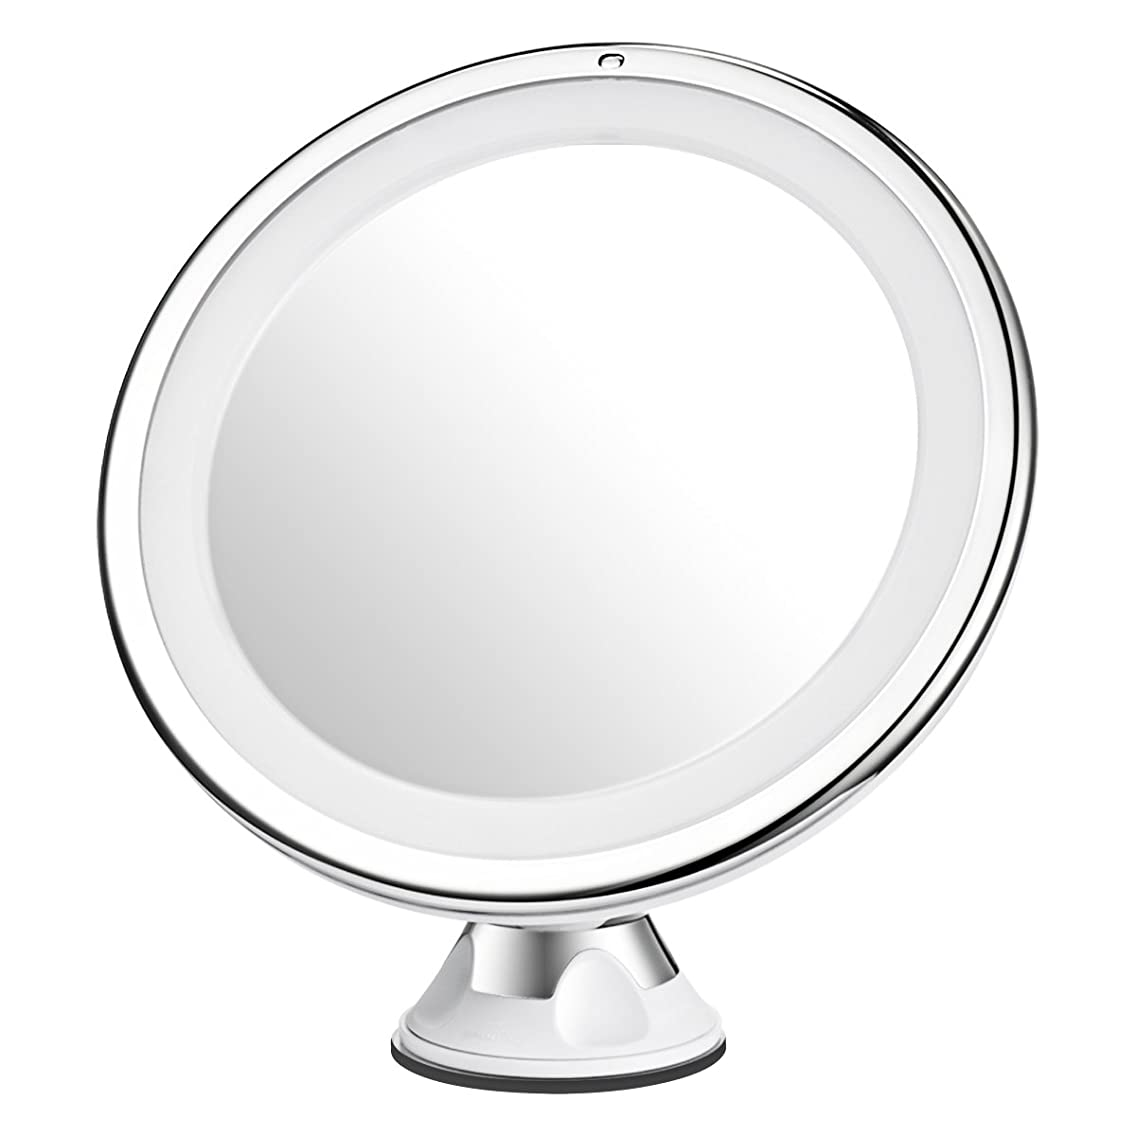 Mpow 7X Magnifying Mirror, 16 LED Lighted Makeup Mirror, 360 Rotation Bathroom Vanity Mirror with Strong Suction Cup, Natural Day Light, Portable & Cordless Bathroom Mirror, Table Stand Mirror